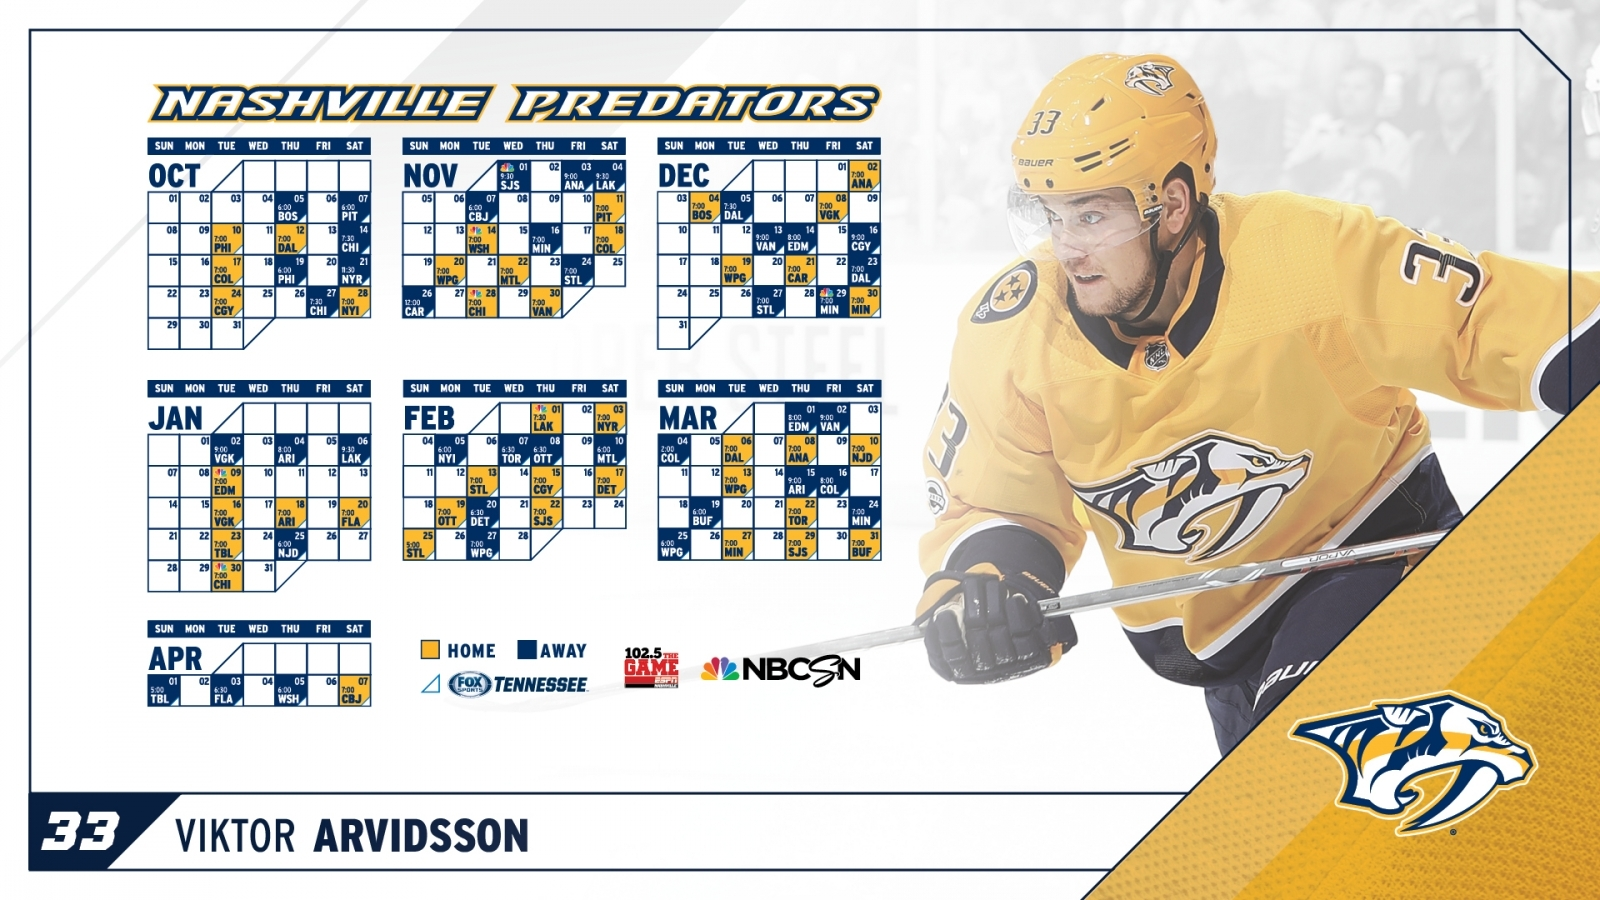 Free Download Downloadable Preds Wallpapers Nashville intended for Nashville Predators Printable Calendar Schedule